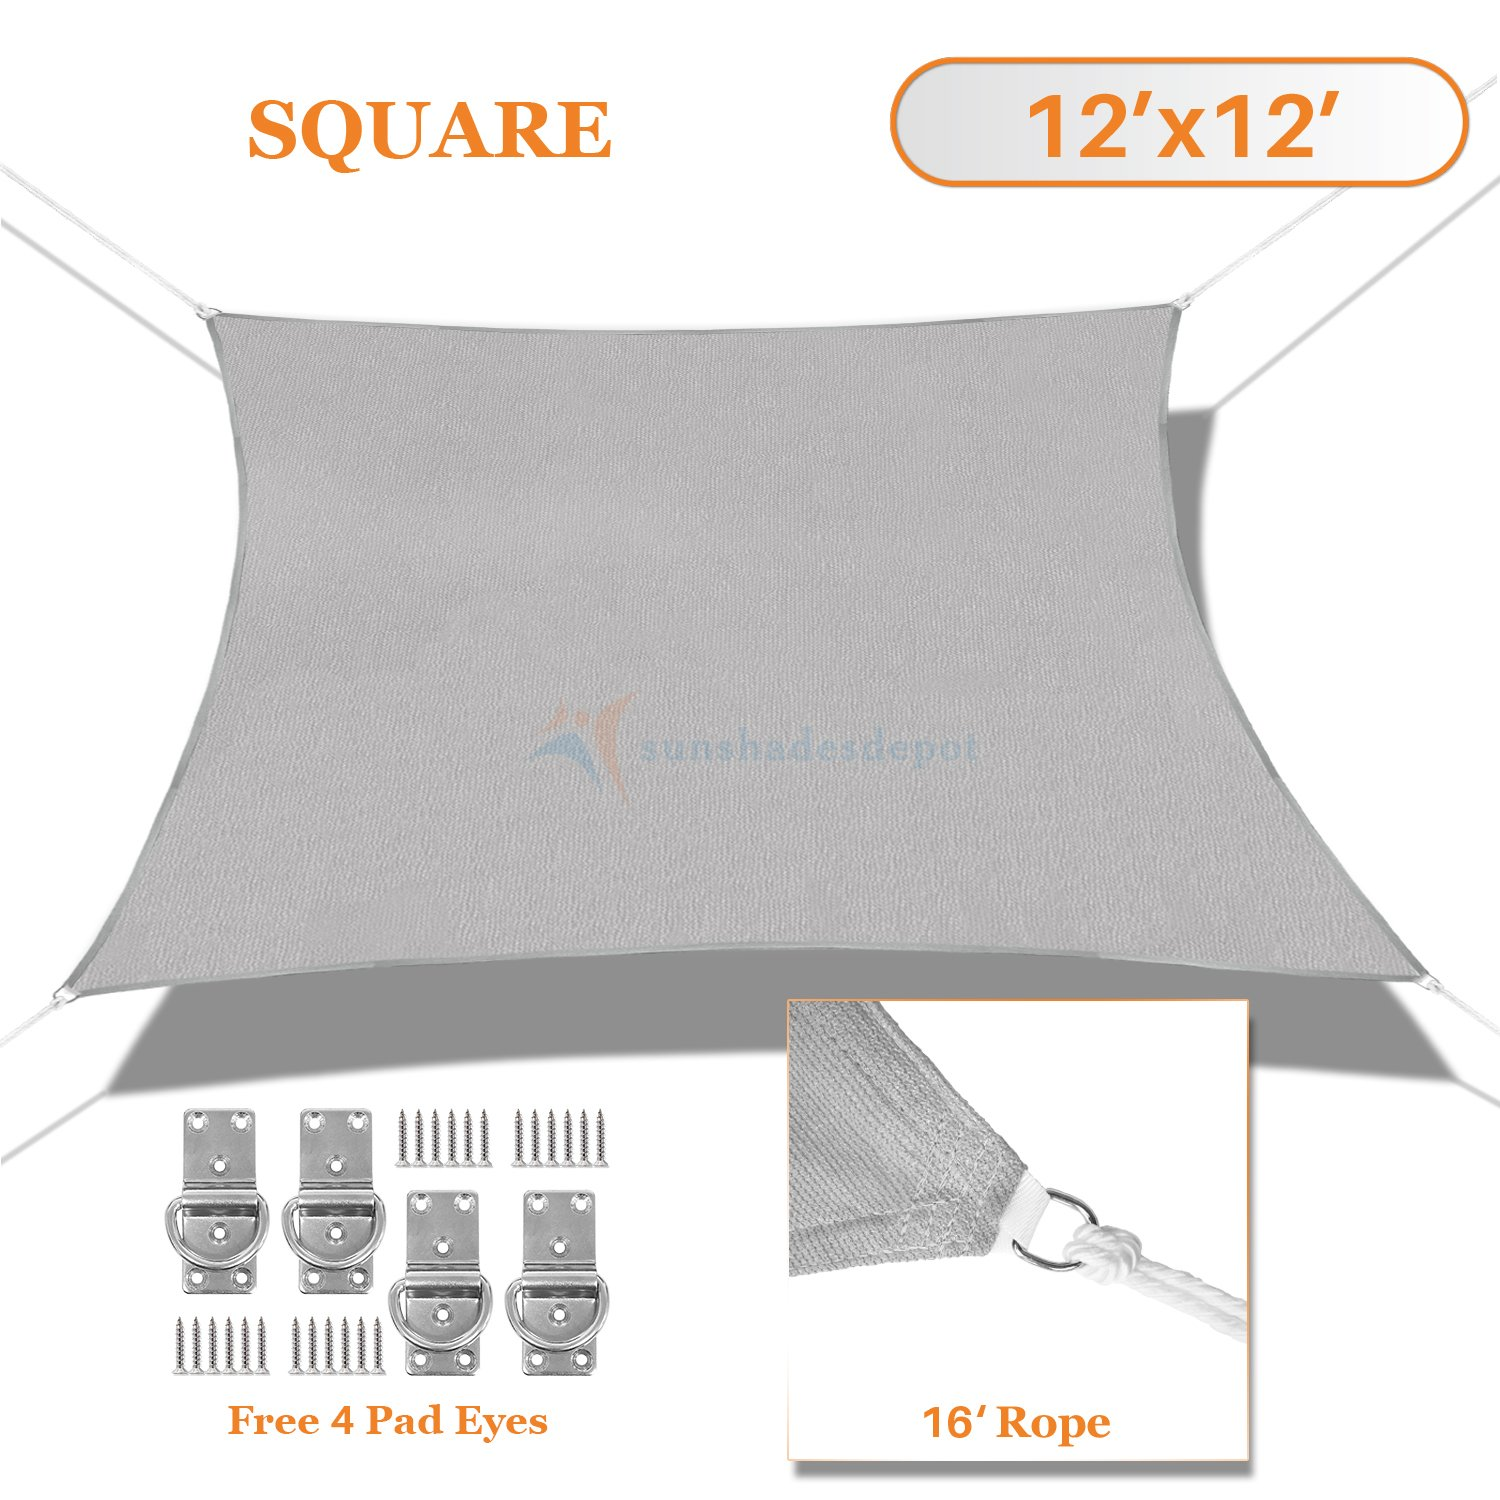 Sunshades Depot 12' x 12' Light Grey Sun Shade Sail Square Permeable Canopy Customize Commercial Standard 180 GSM HDPE